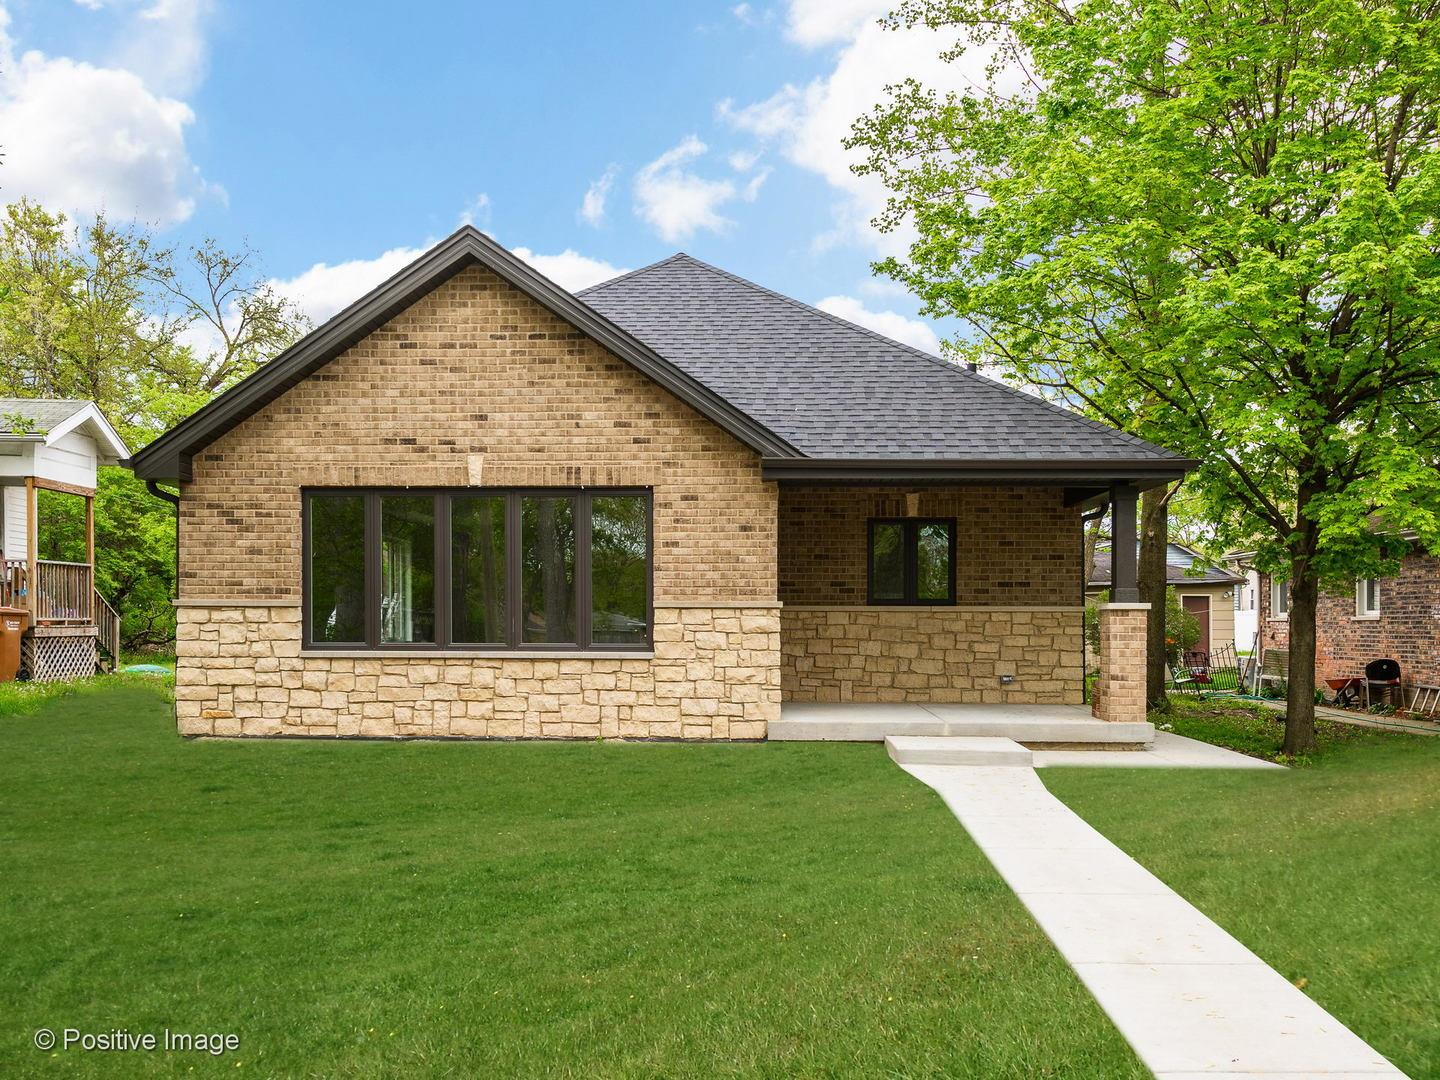 206 1\/2 Spring Street, Willow Springs, IL 60480 - #: 11032391